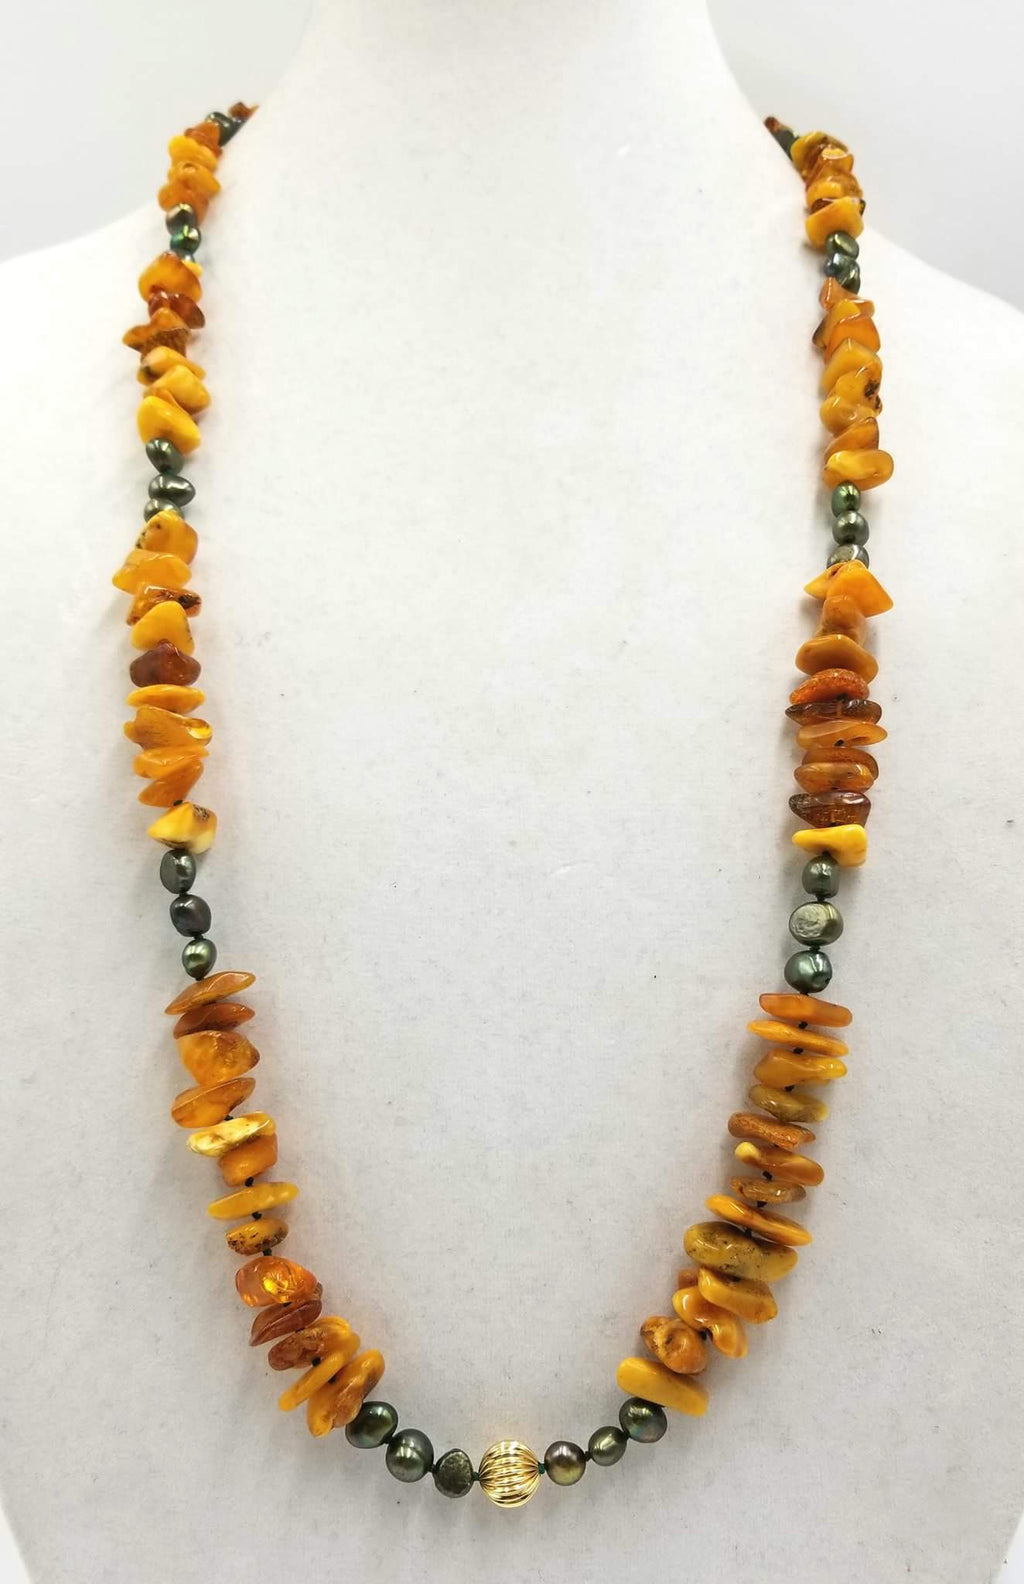 Vintage Baltic amber, green-black pearls, 14KYG, Opera length necklace. Currently available at the Assistance League of Greater Portland in Beaverton, OR.